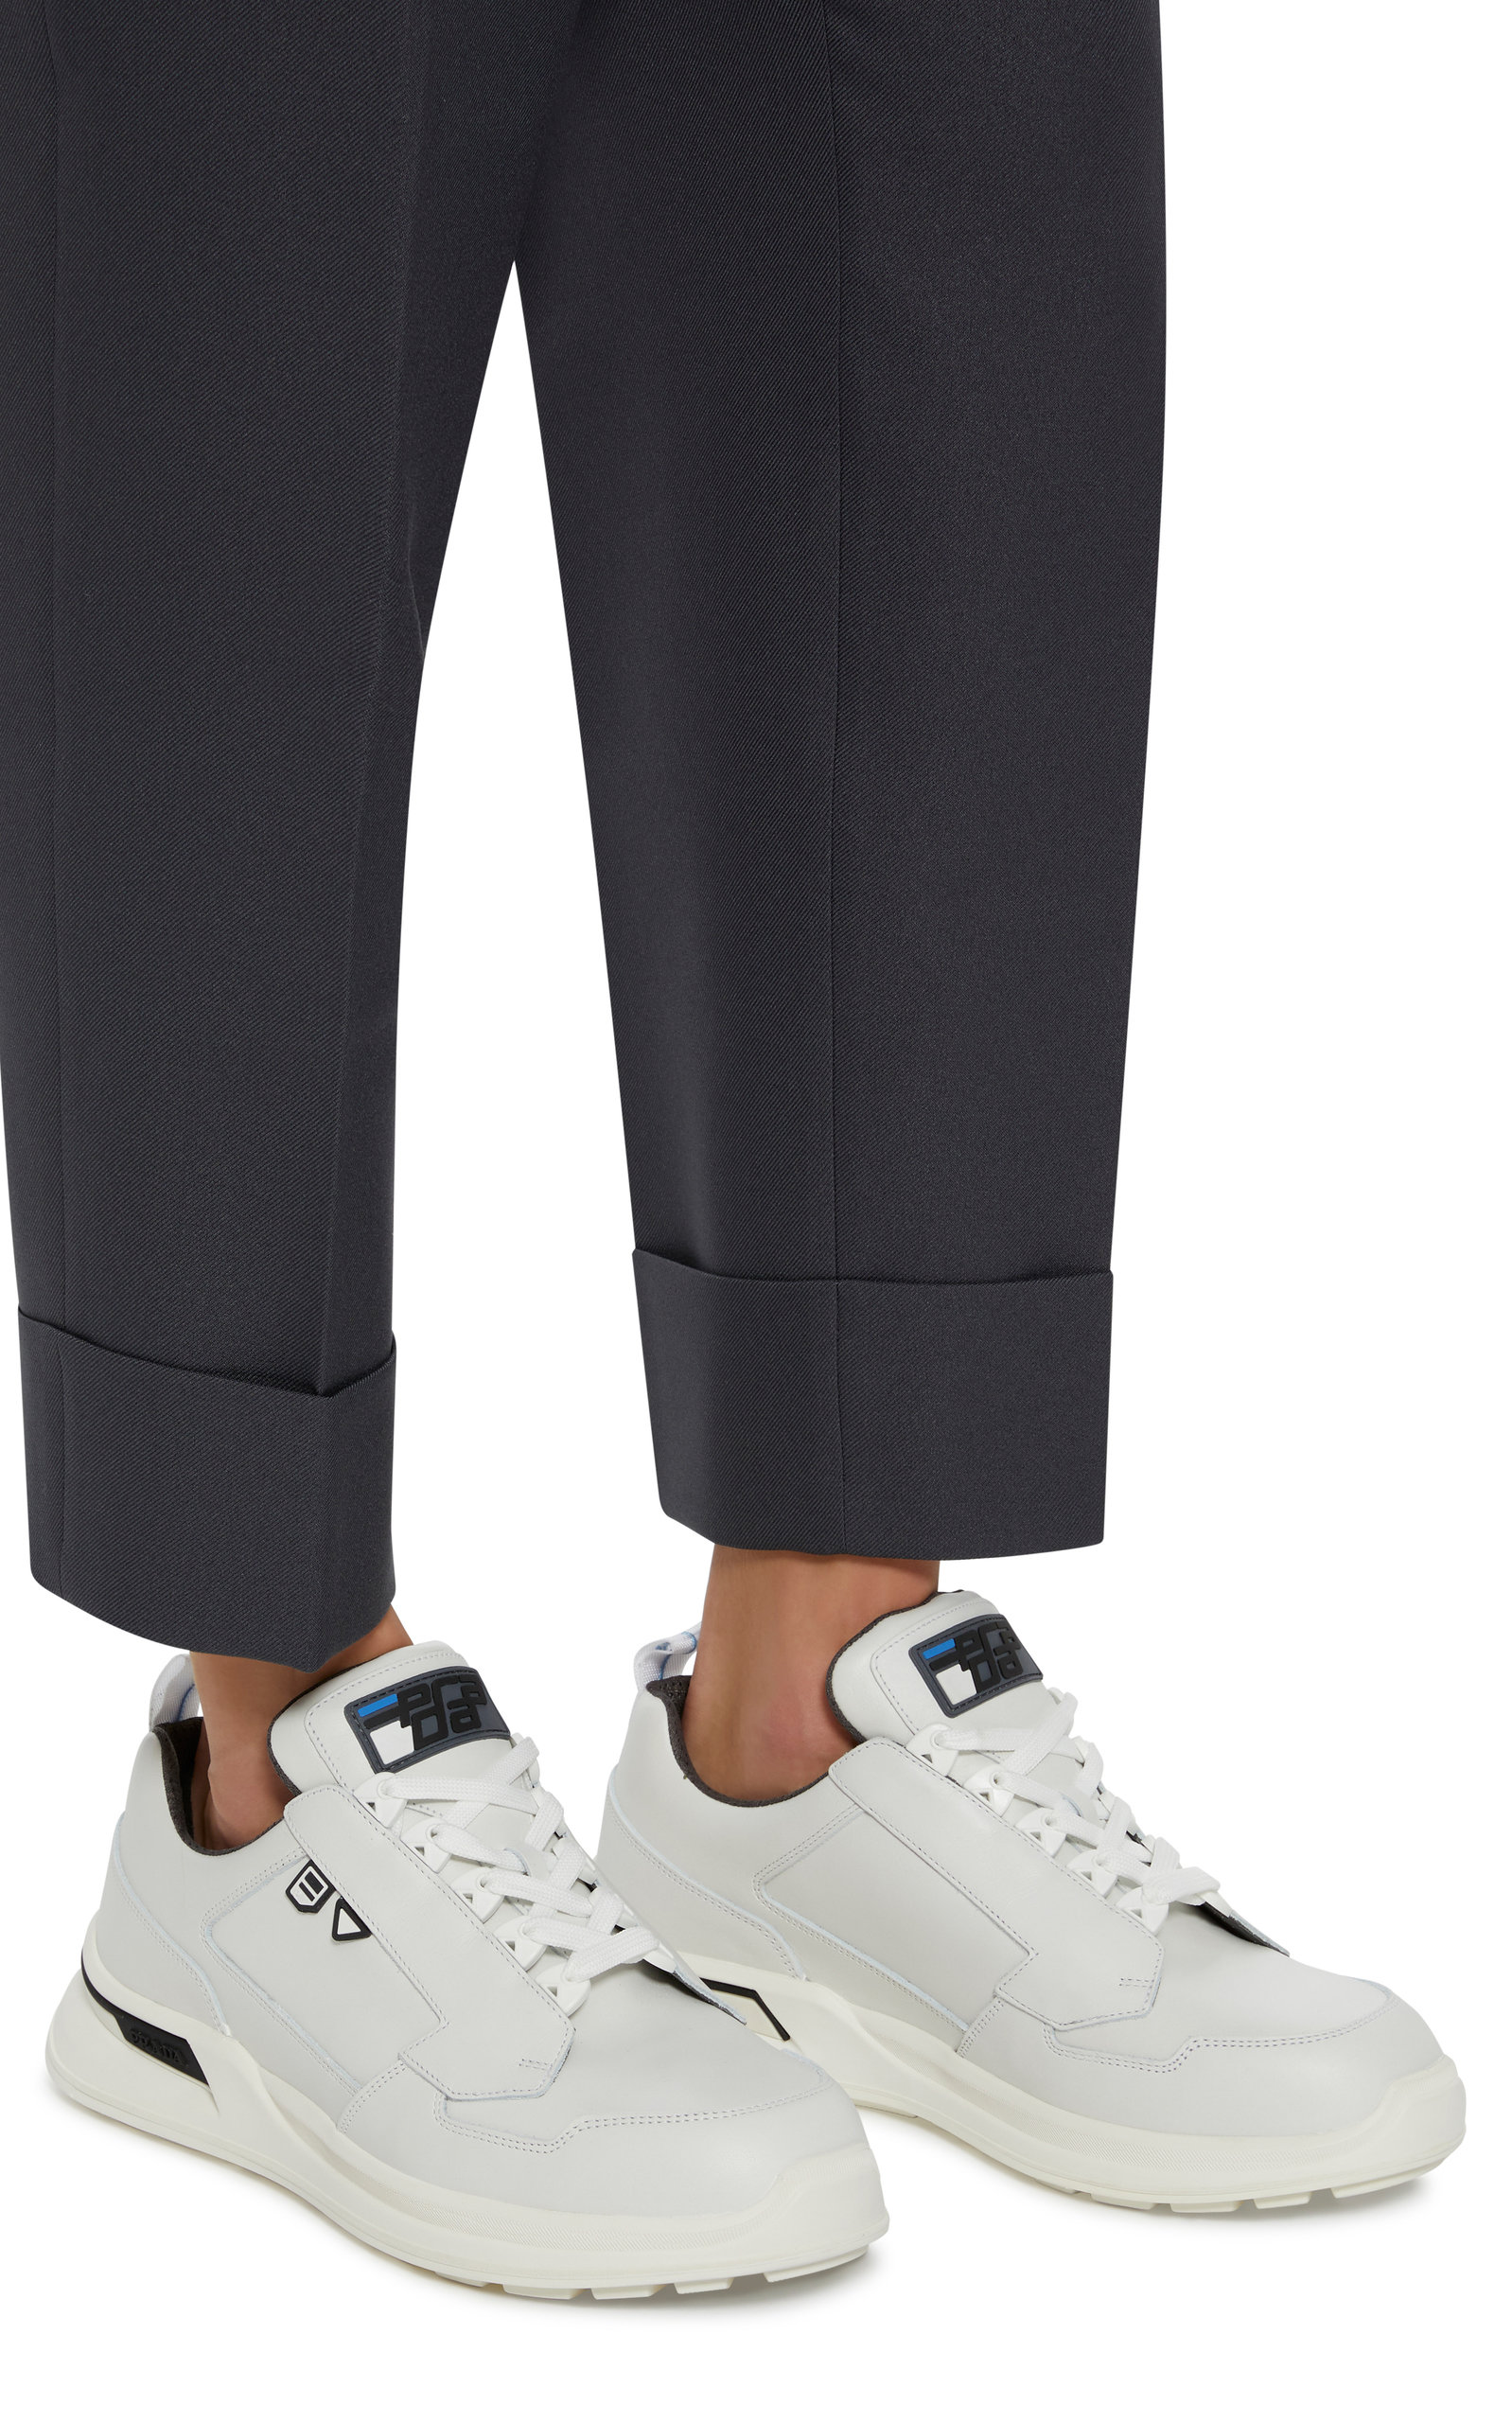 Lace-Up White Work Sneakers By Prada